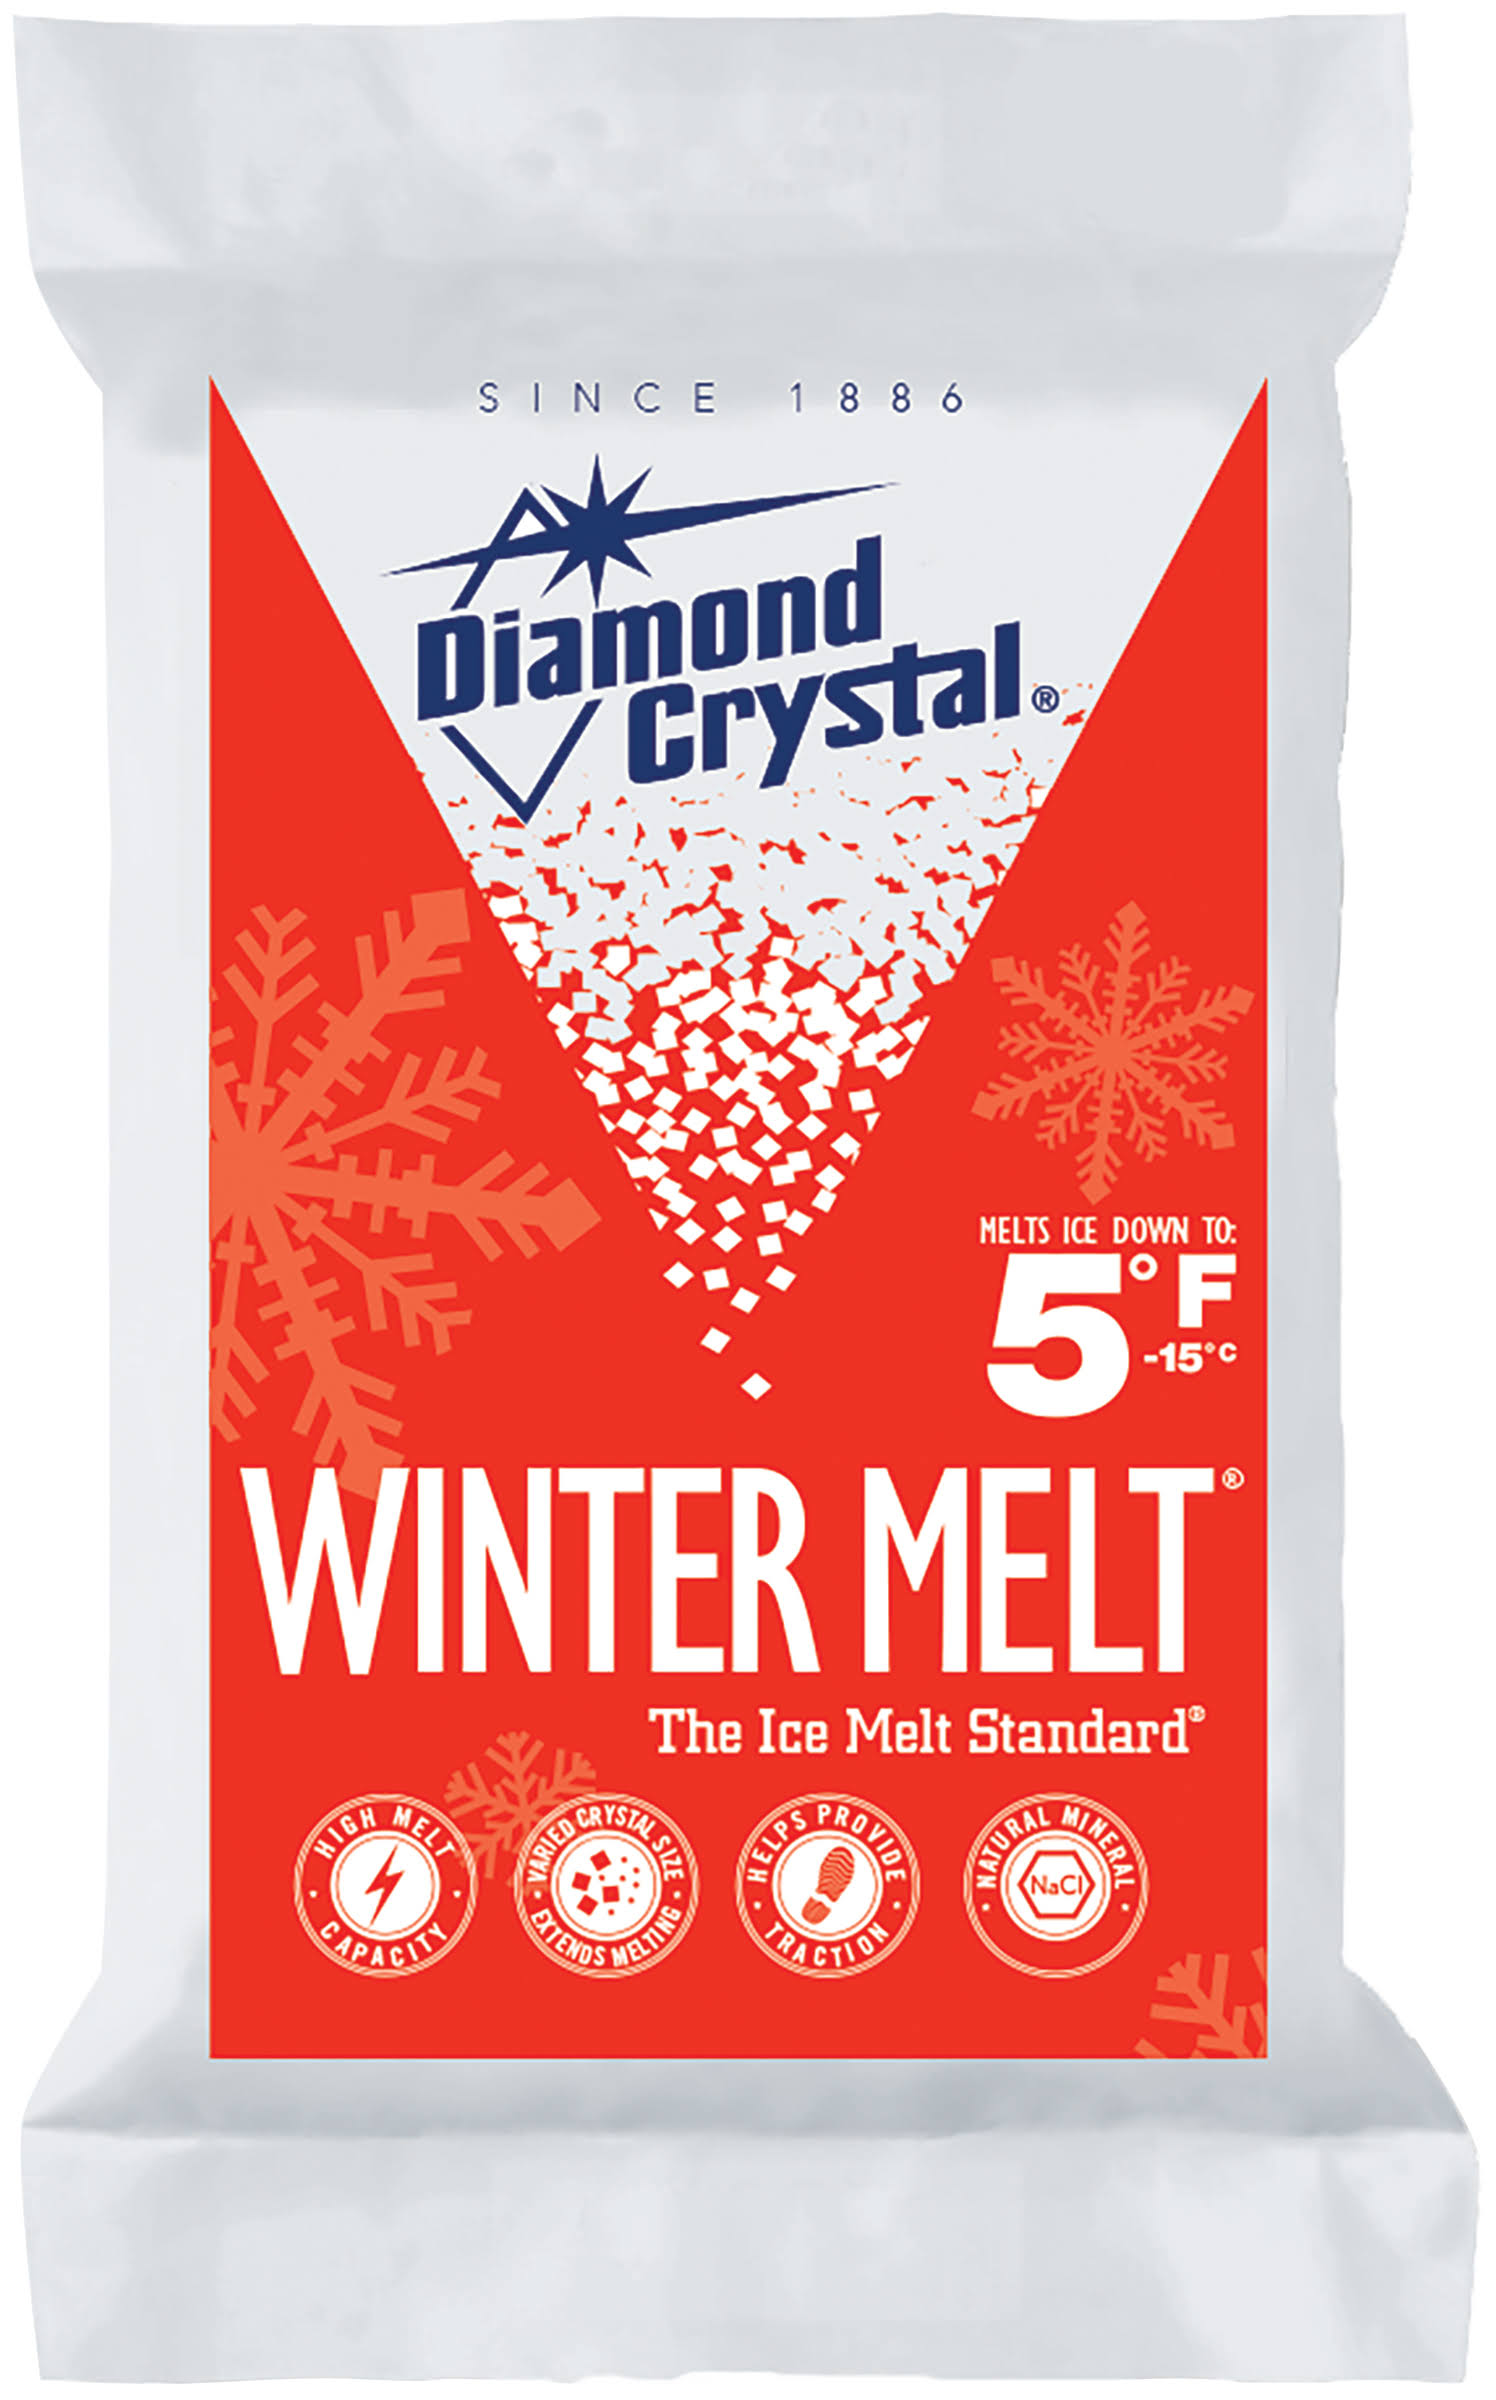 Diamond Crystal Winter Melt Rock Salt - 10 lb bag